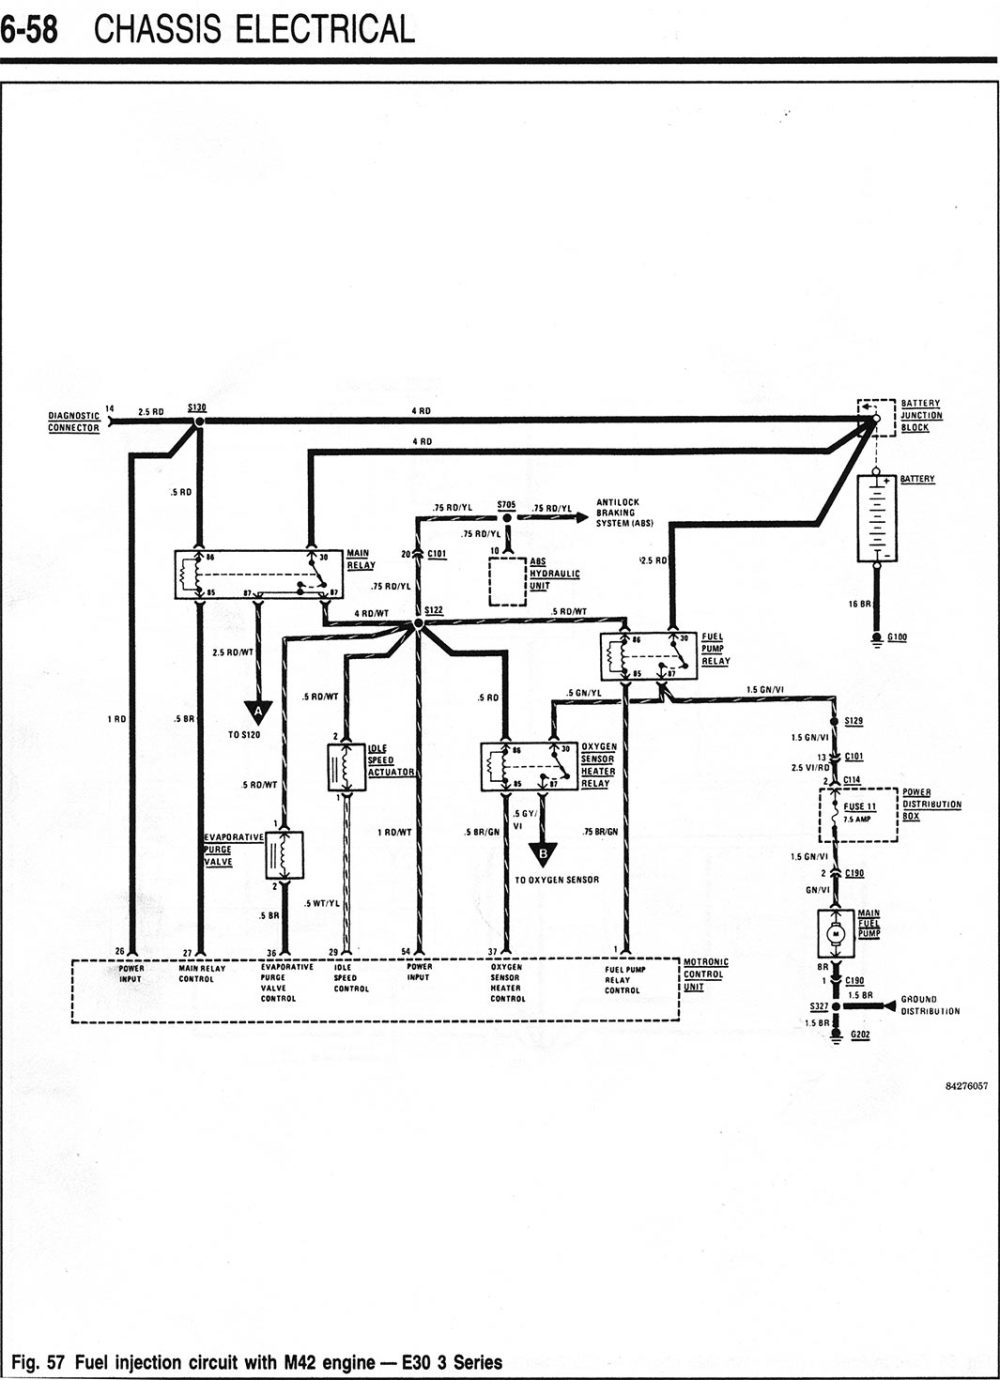 medium resolution of bmw e46 n42 wiring diagram wiring diagrams scematic 1984 jeep wiring diagram 1984 bmw wiring diagram